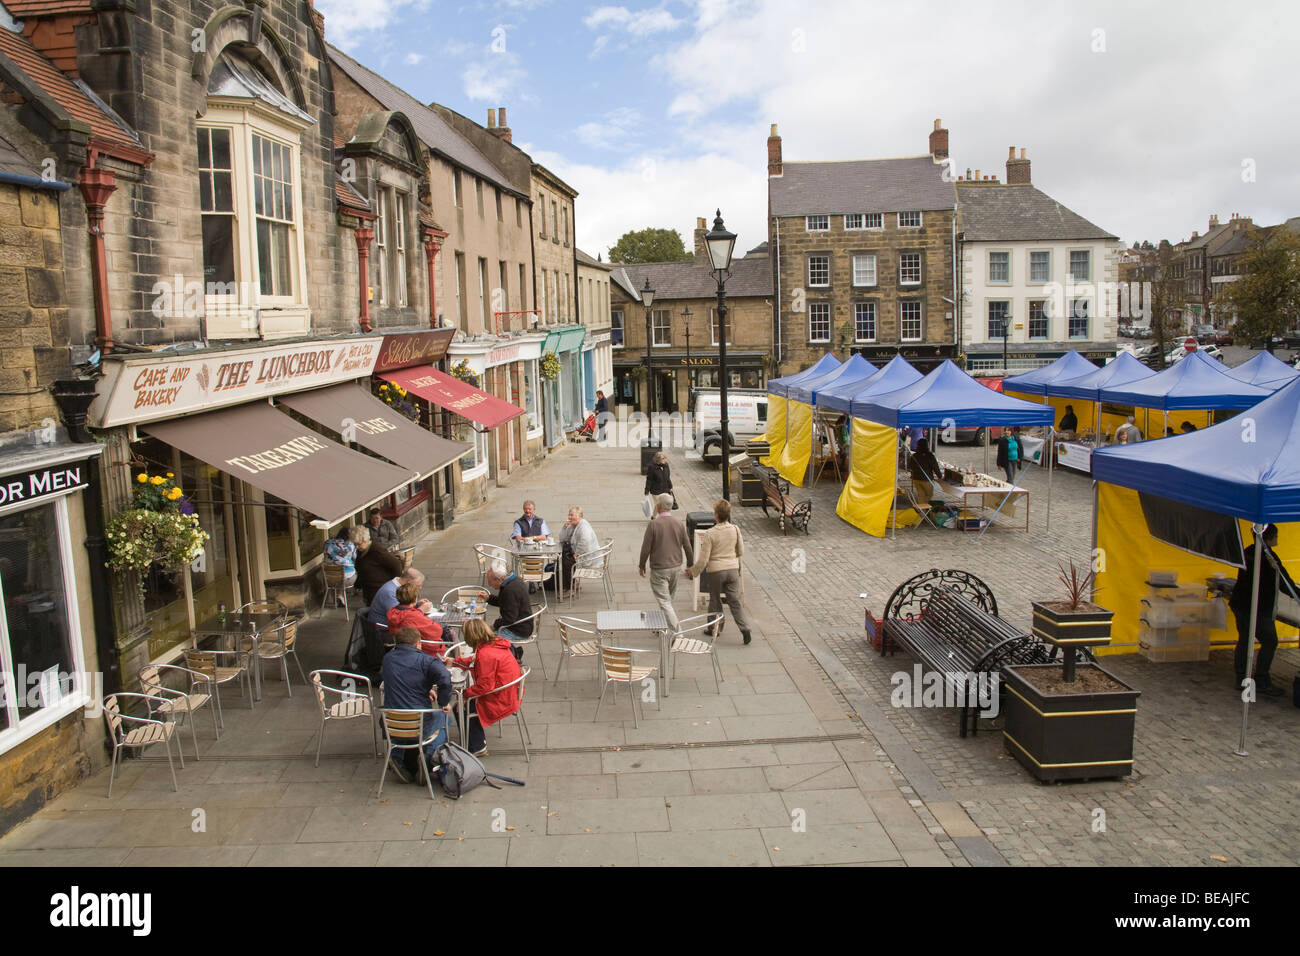 Alnwick Northumberland England UK Looking down on the stalls of weekly market in Market Place - Stock Image